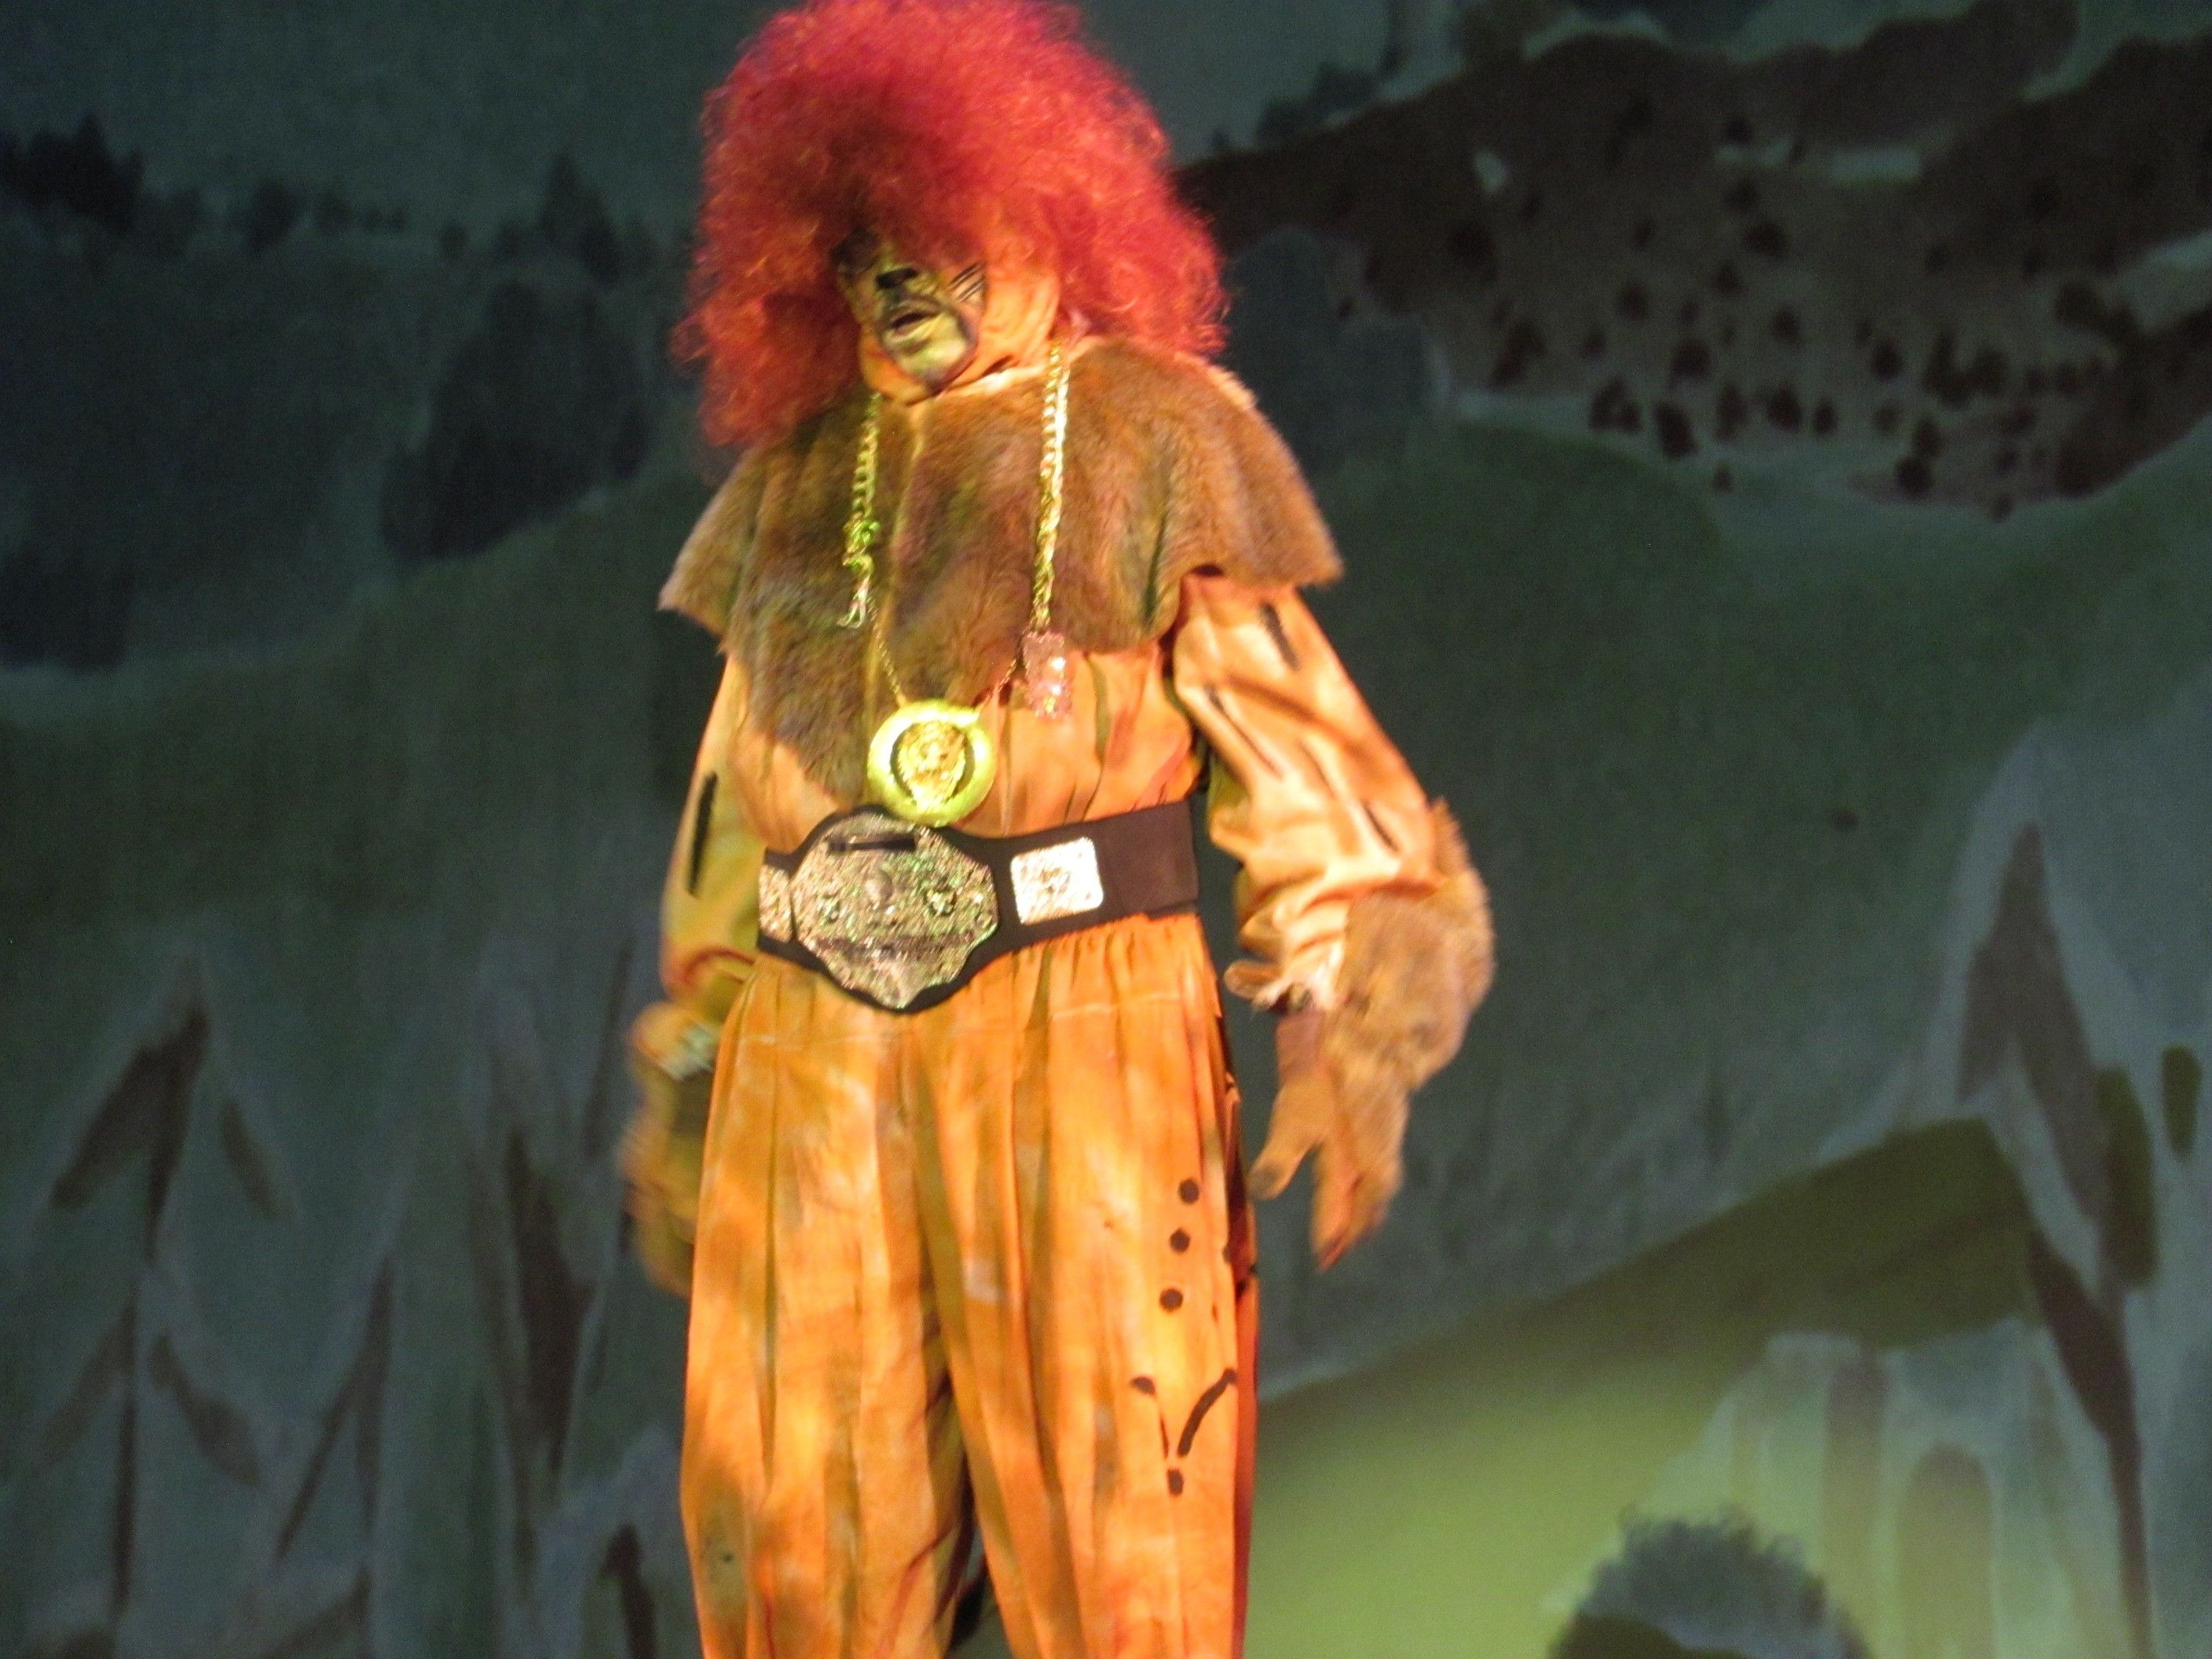 the wiz the lion is the king of the jungle he knew how to work it